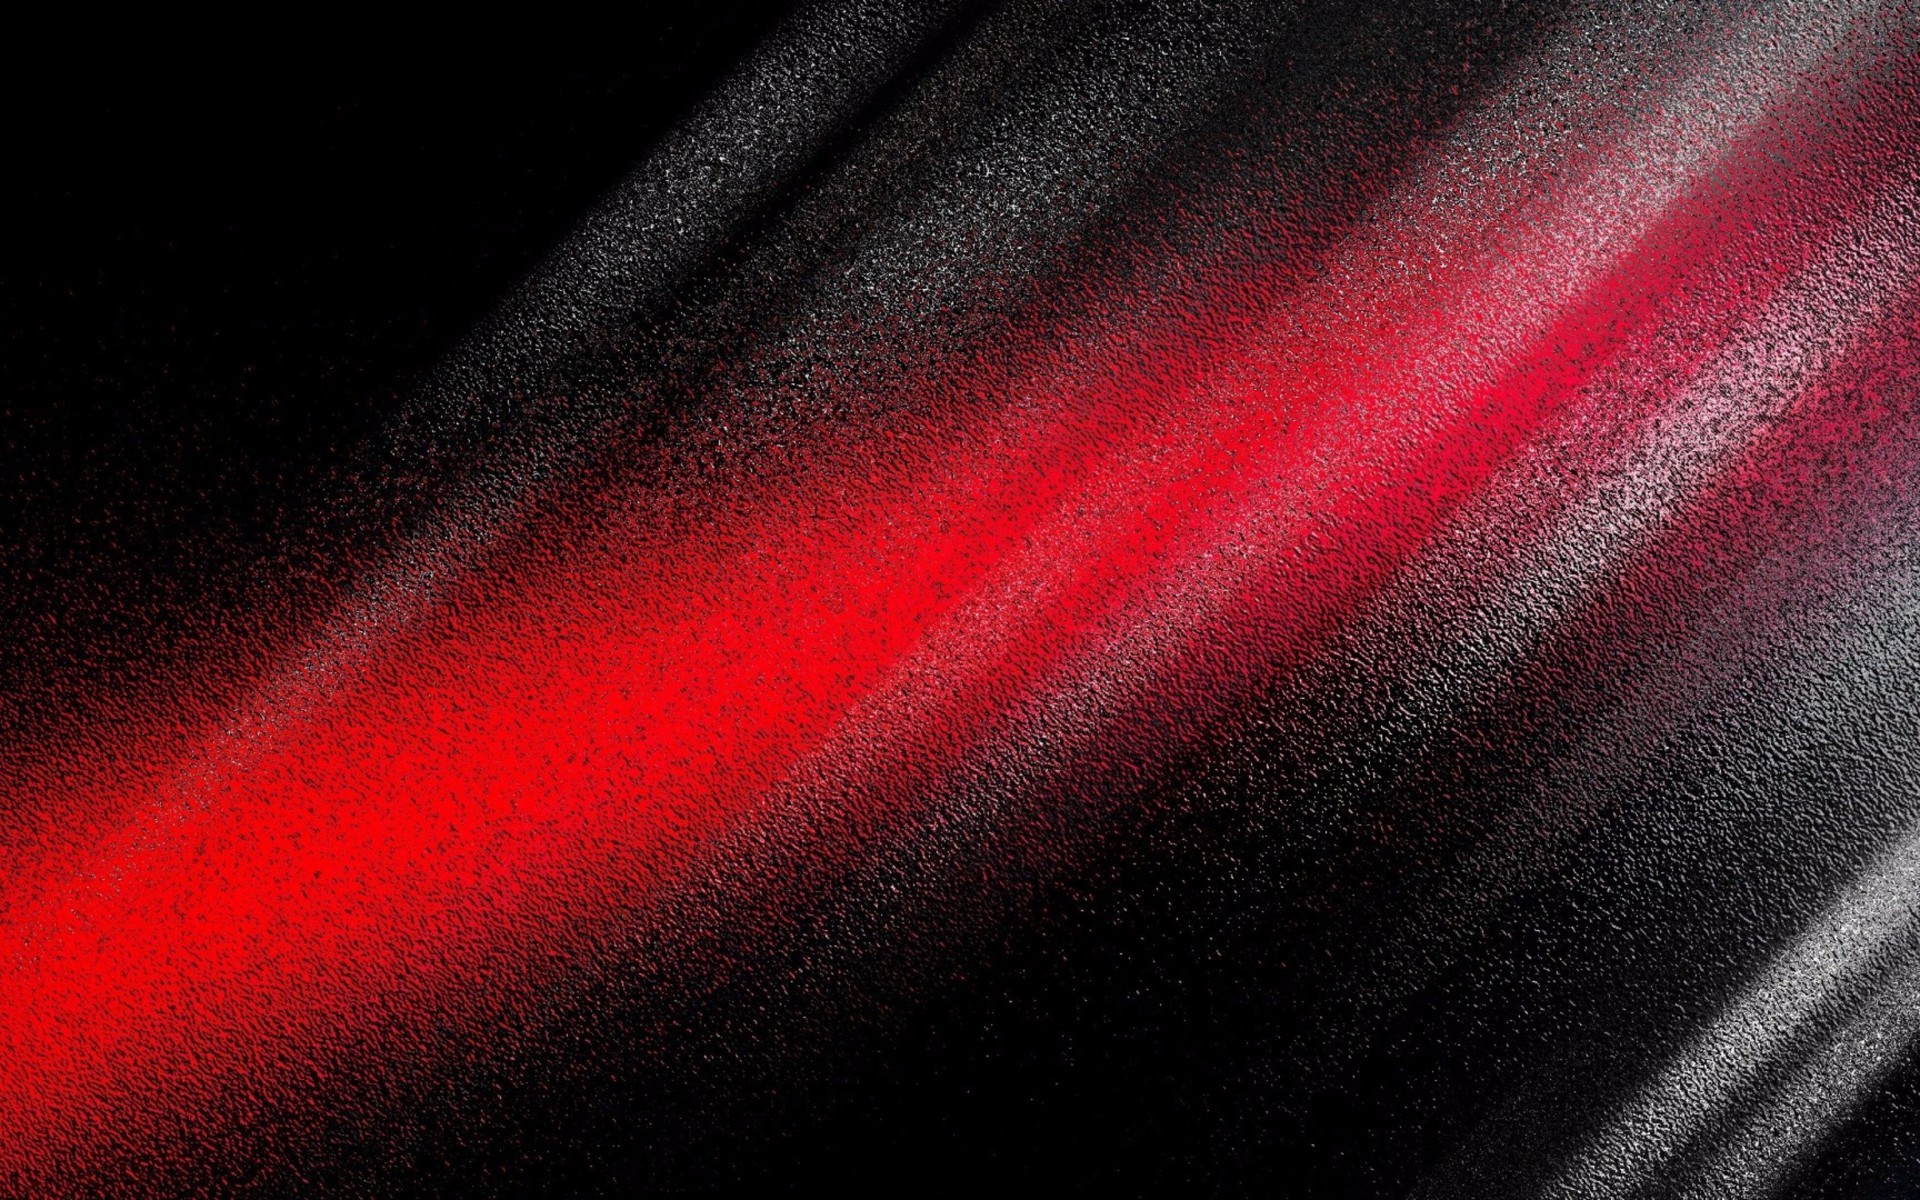 Black and Red 2016 4K Abstract Wallpapers | Free 4K Wallpaper